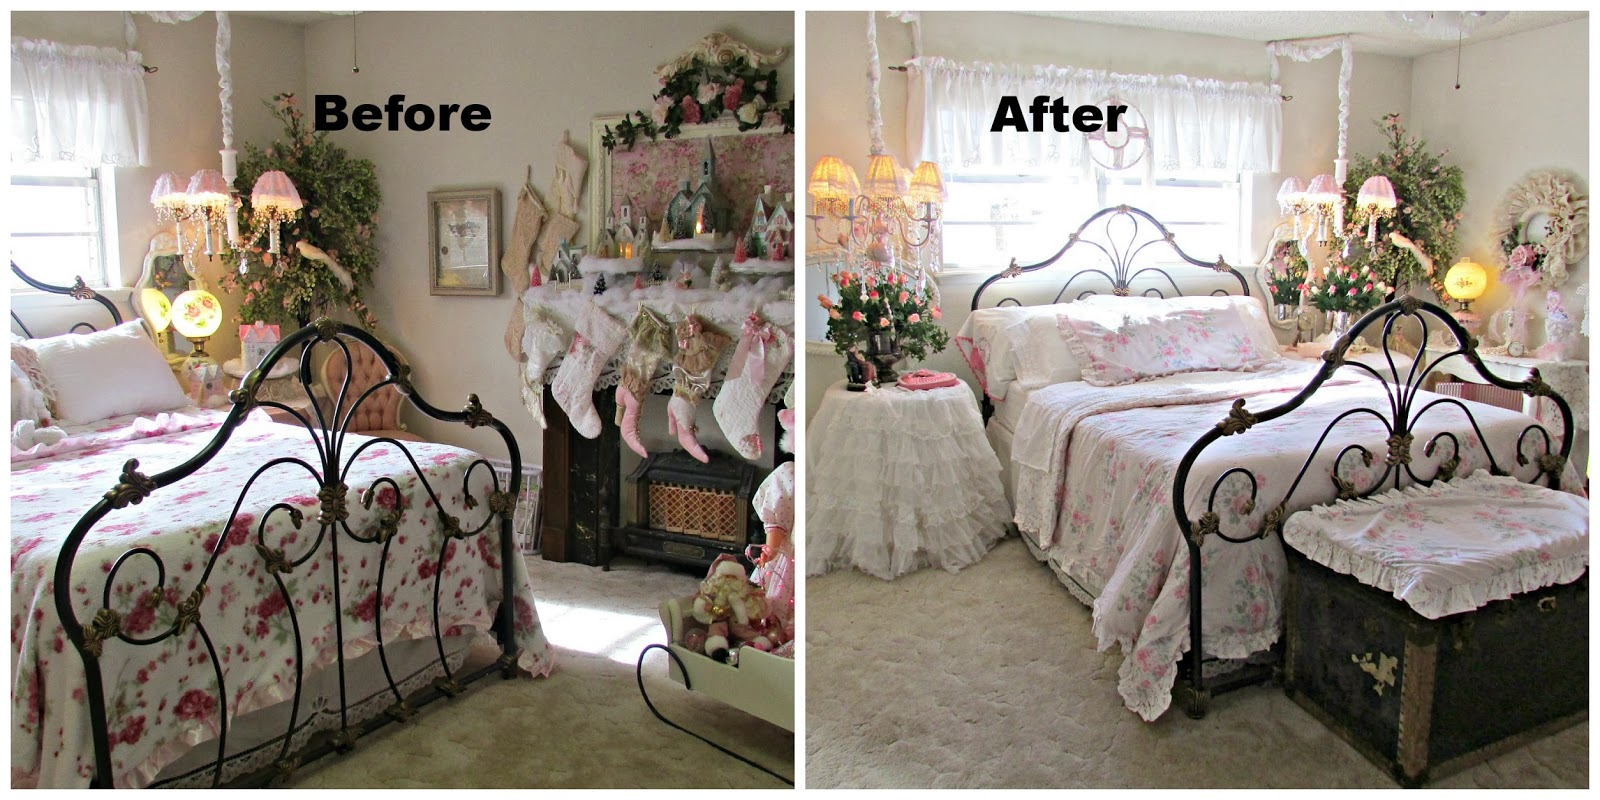 Penny s Vintage Home  Romantic Ideas for Decorating your Bedroom Romantic Ideas for Decorating your Bedroom